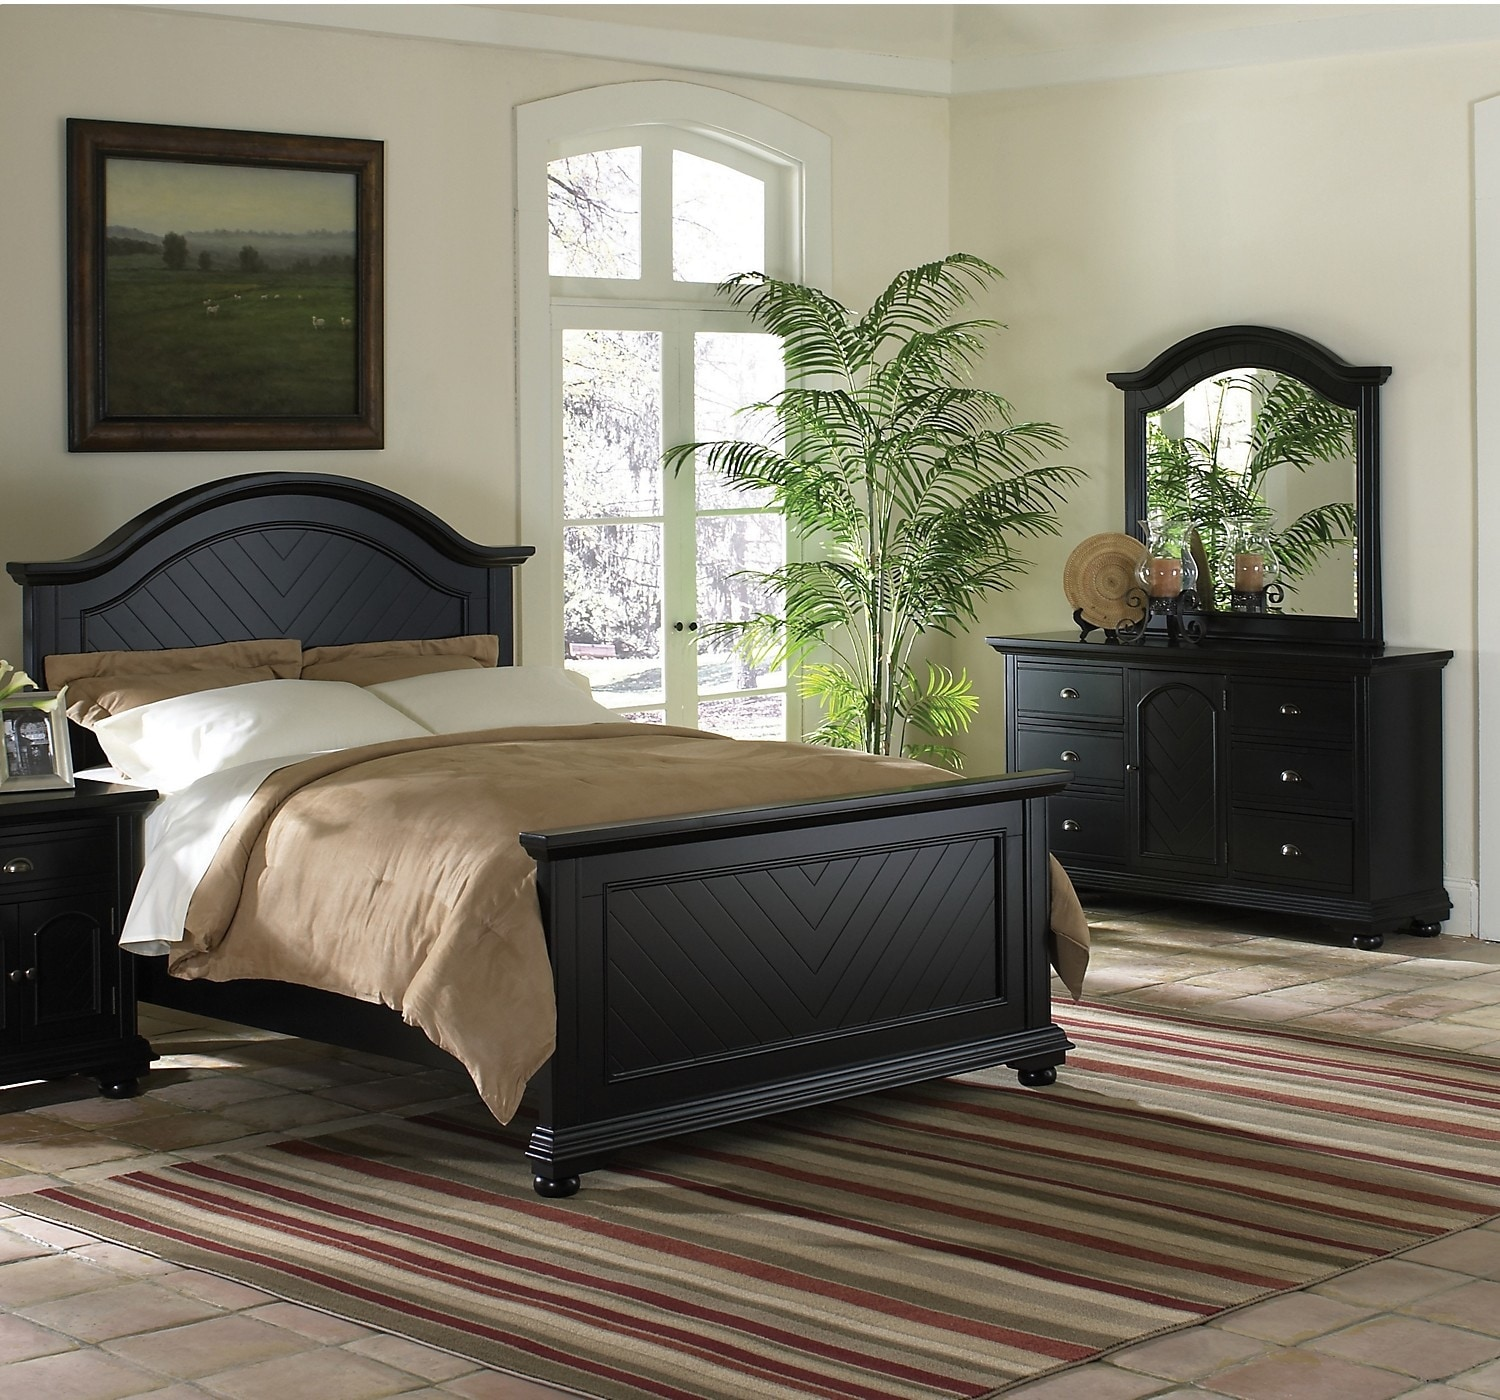 Bedroom Furniture - Brook Black 5-Piece King Bedroom Set